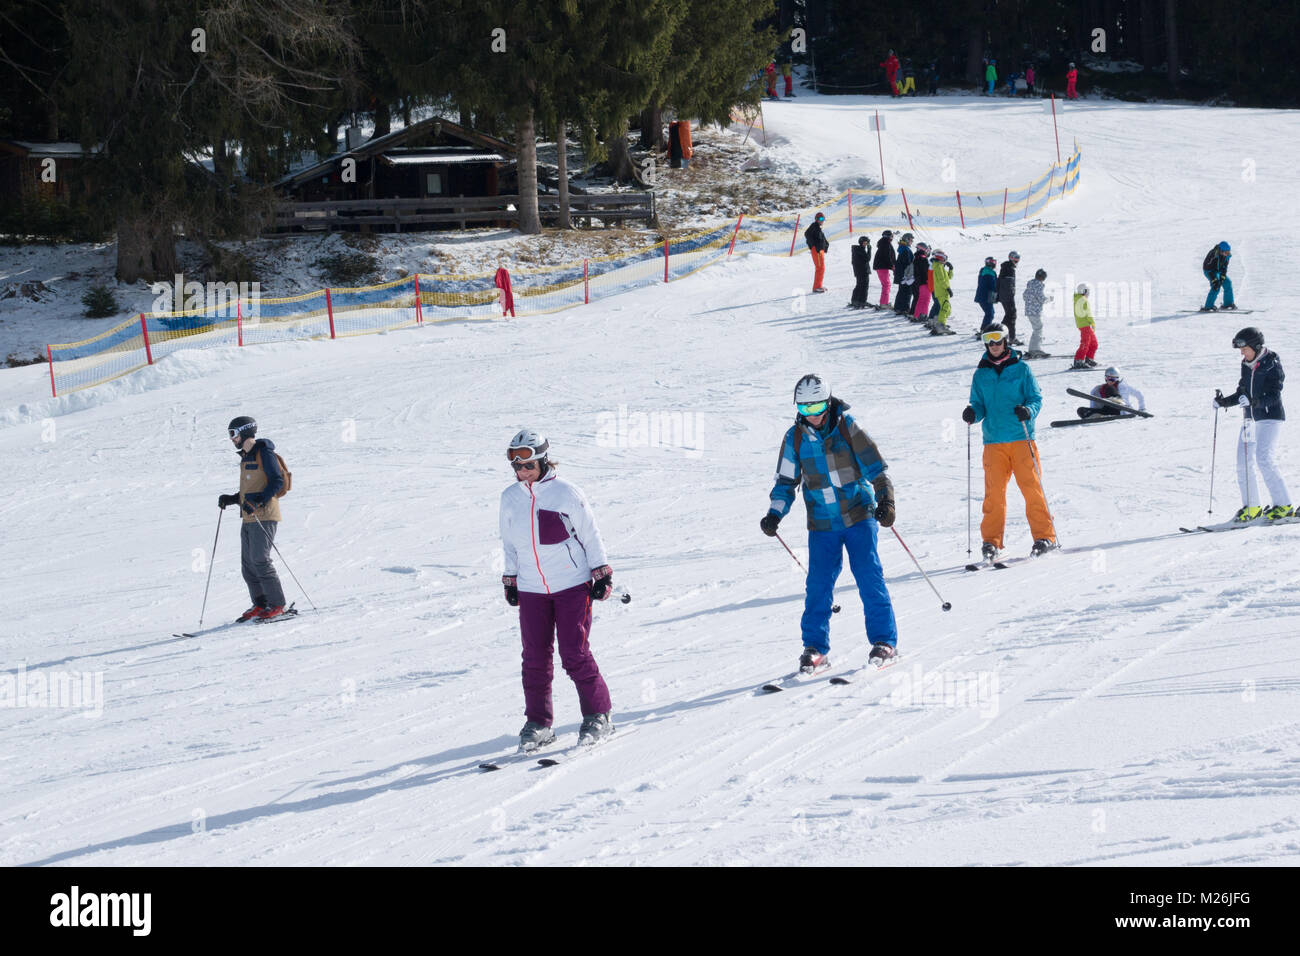 Skiers having a ski lesson on the nursery slopes, Niederau, Alpbach, Tirol, Austria, Europe - Stock Image